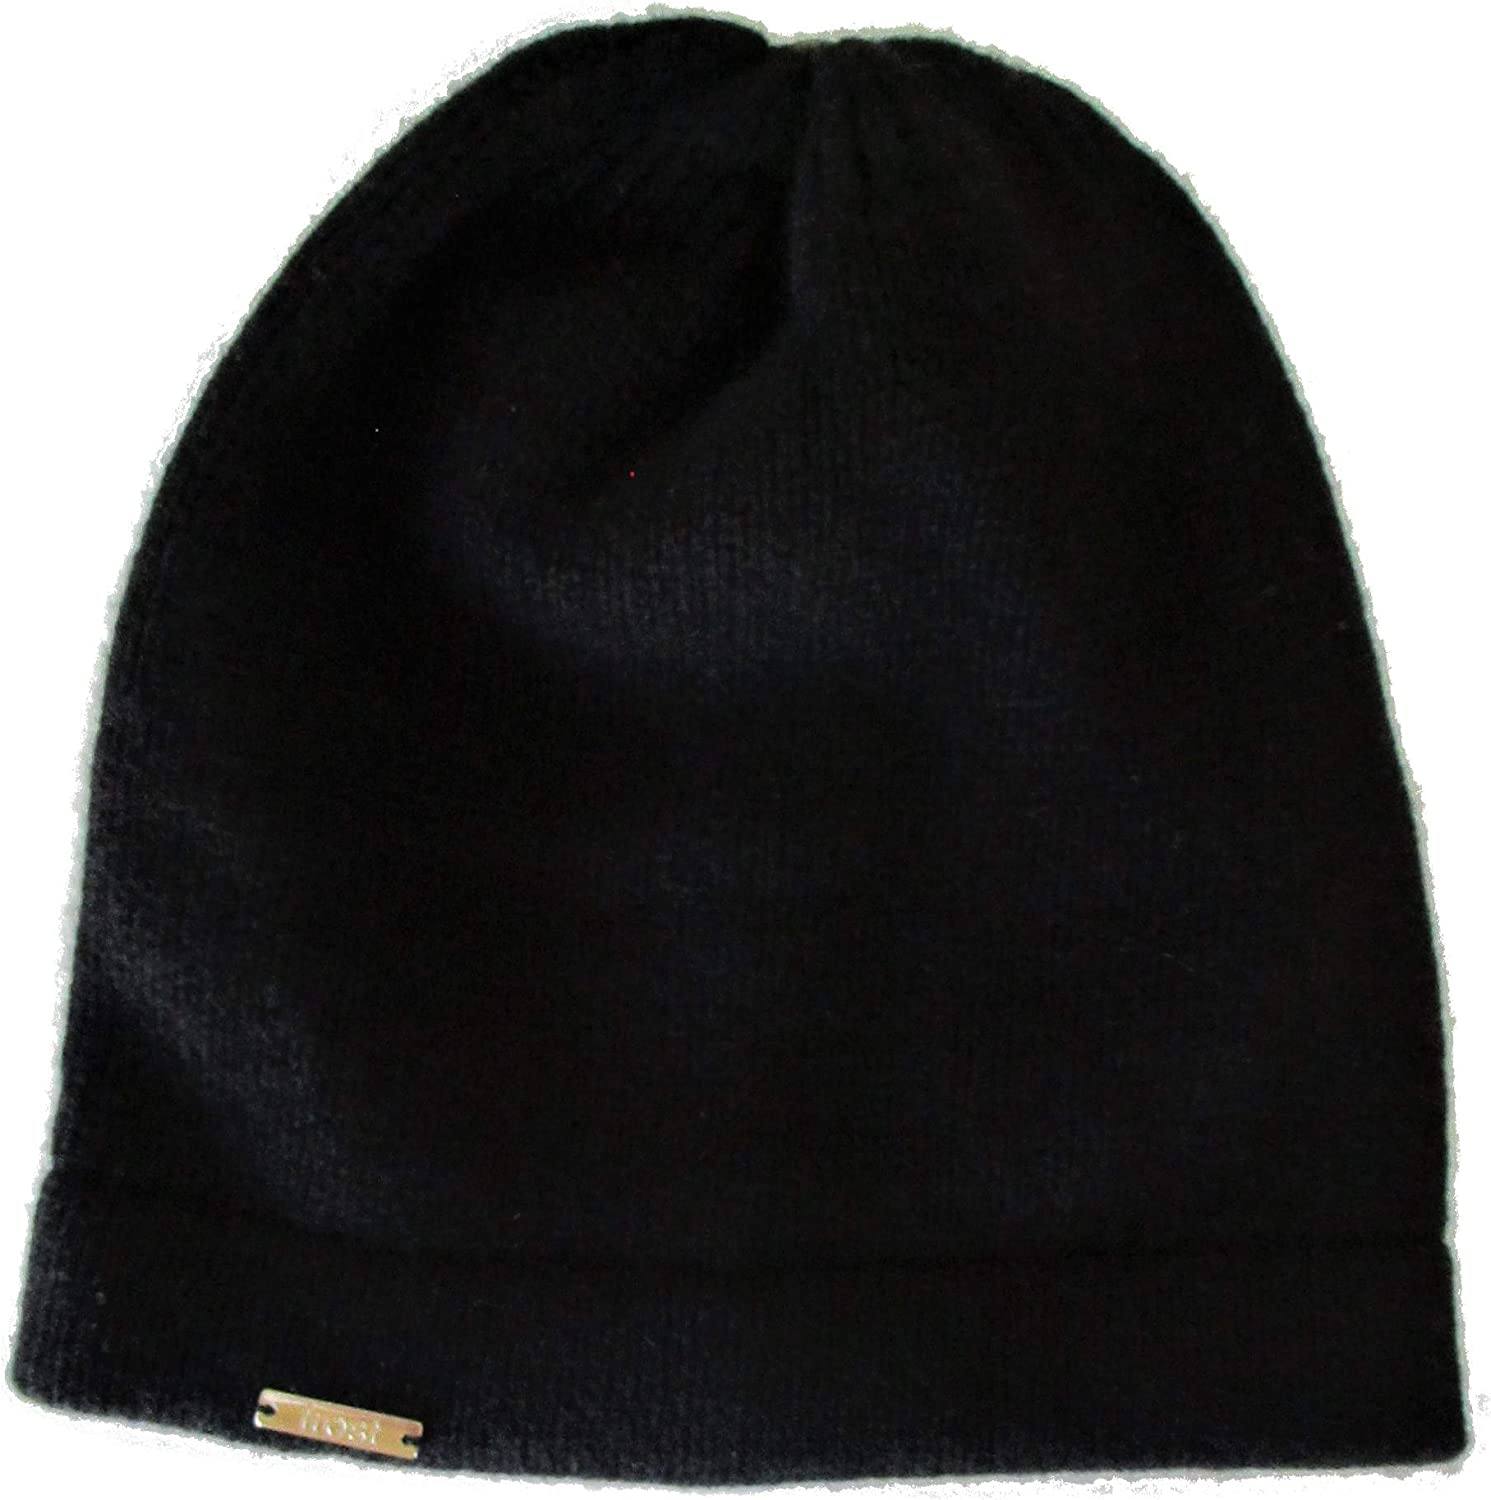 Frost Hats Luxurious Cashmere Beanie Soft Mans Hat CSH-059 Purchase free shipping